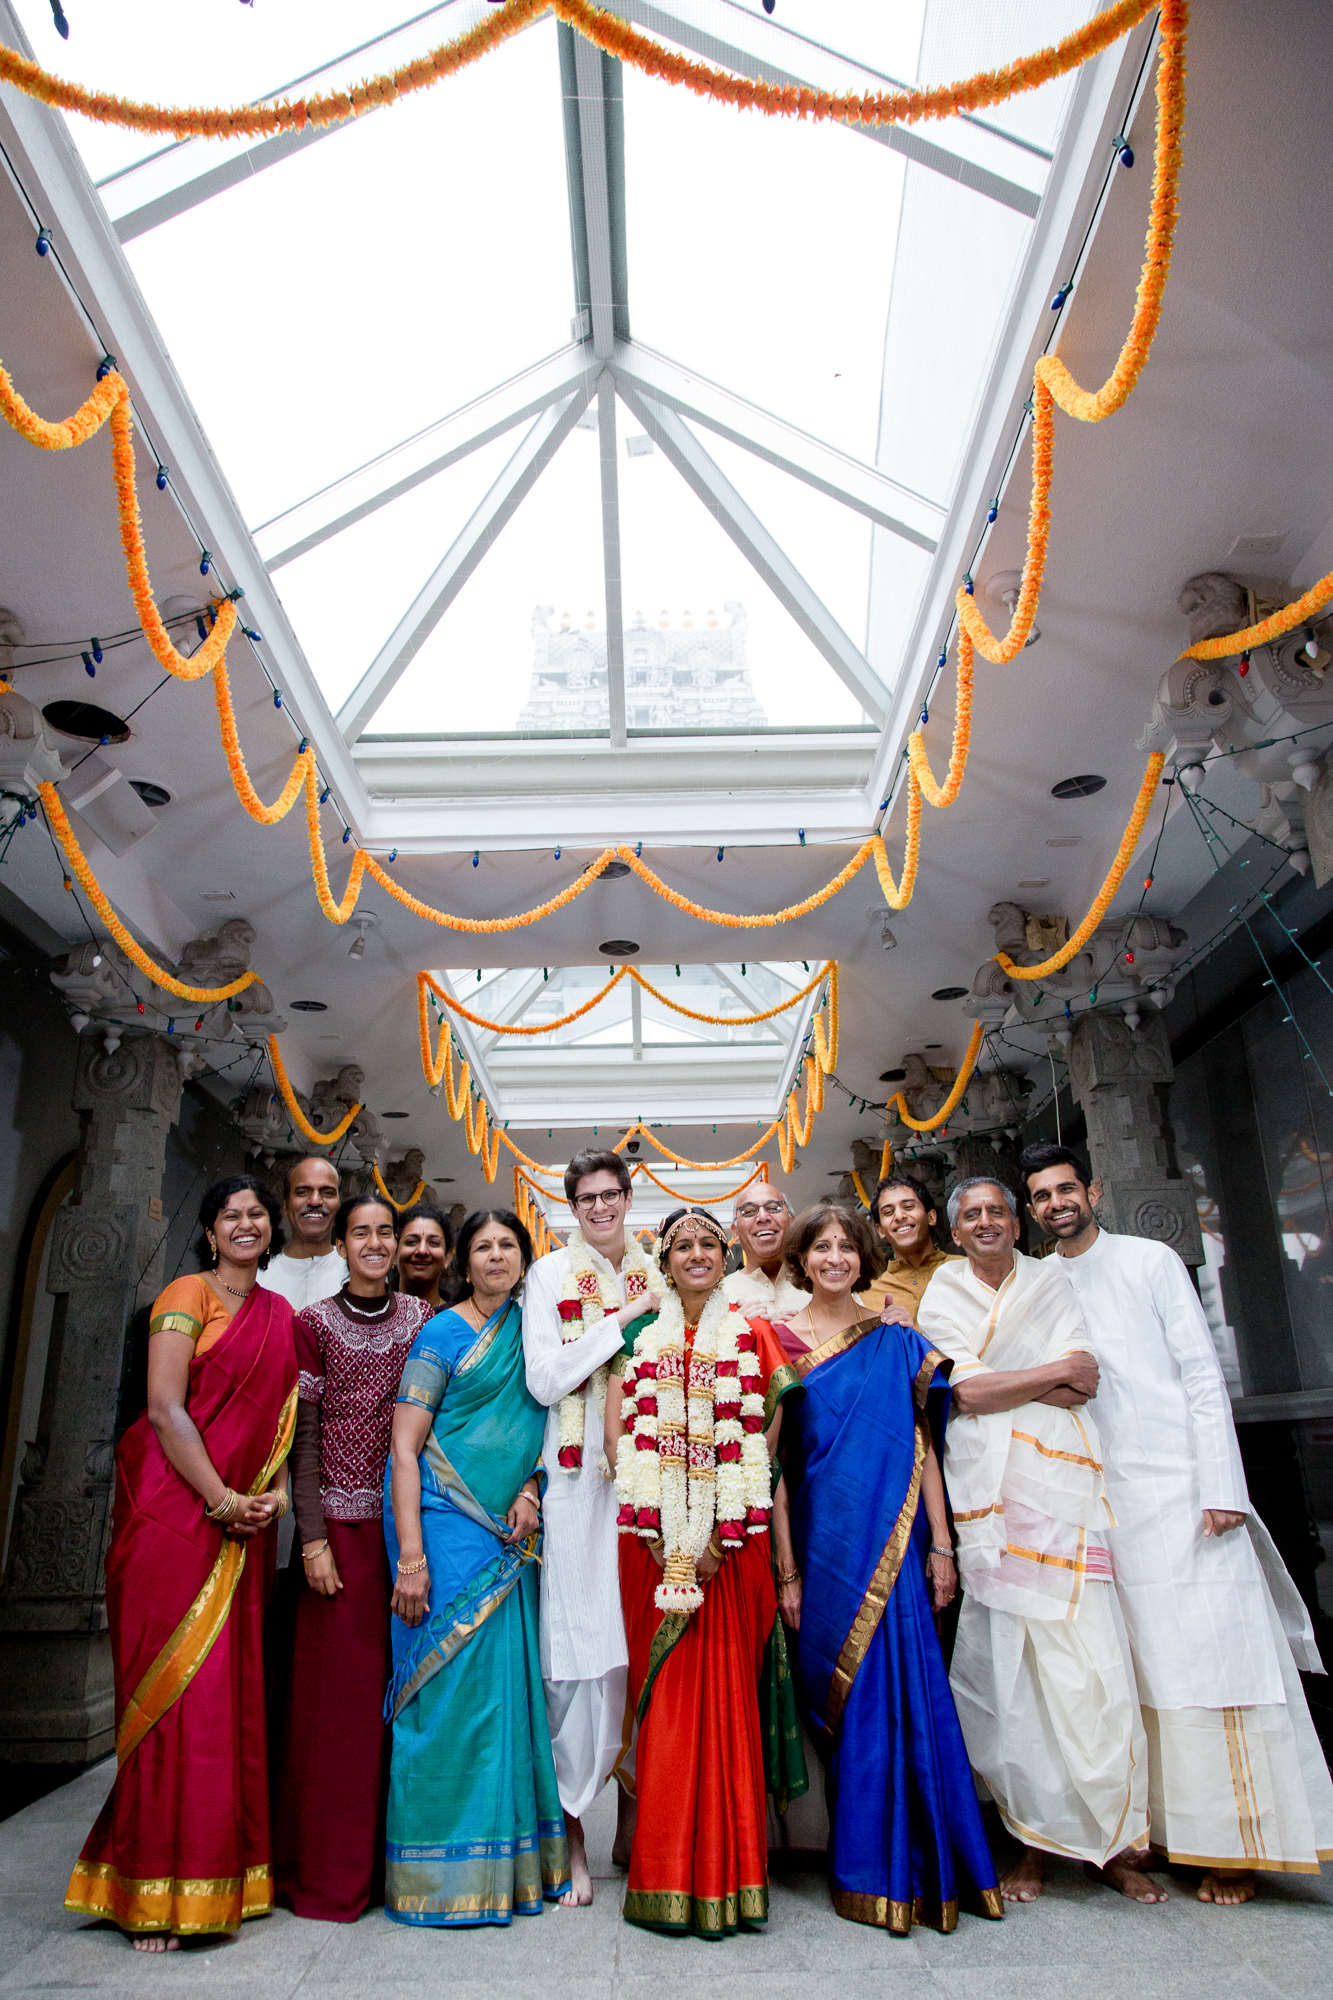 090_CarlyGaebe_SteadfastStudio_WeddingPhotography_NewYorkCity_Queens_Hindu_GaneshTemple_Indian_Bride_Groom_JasmineFlowers_WeddingParty.jpg